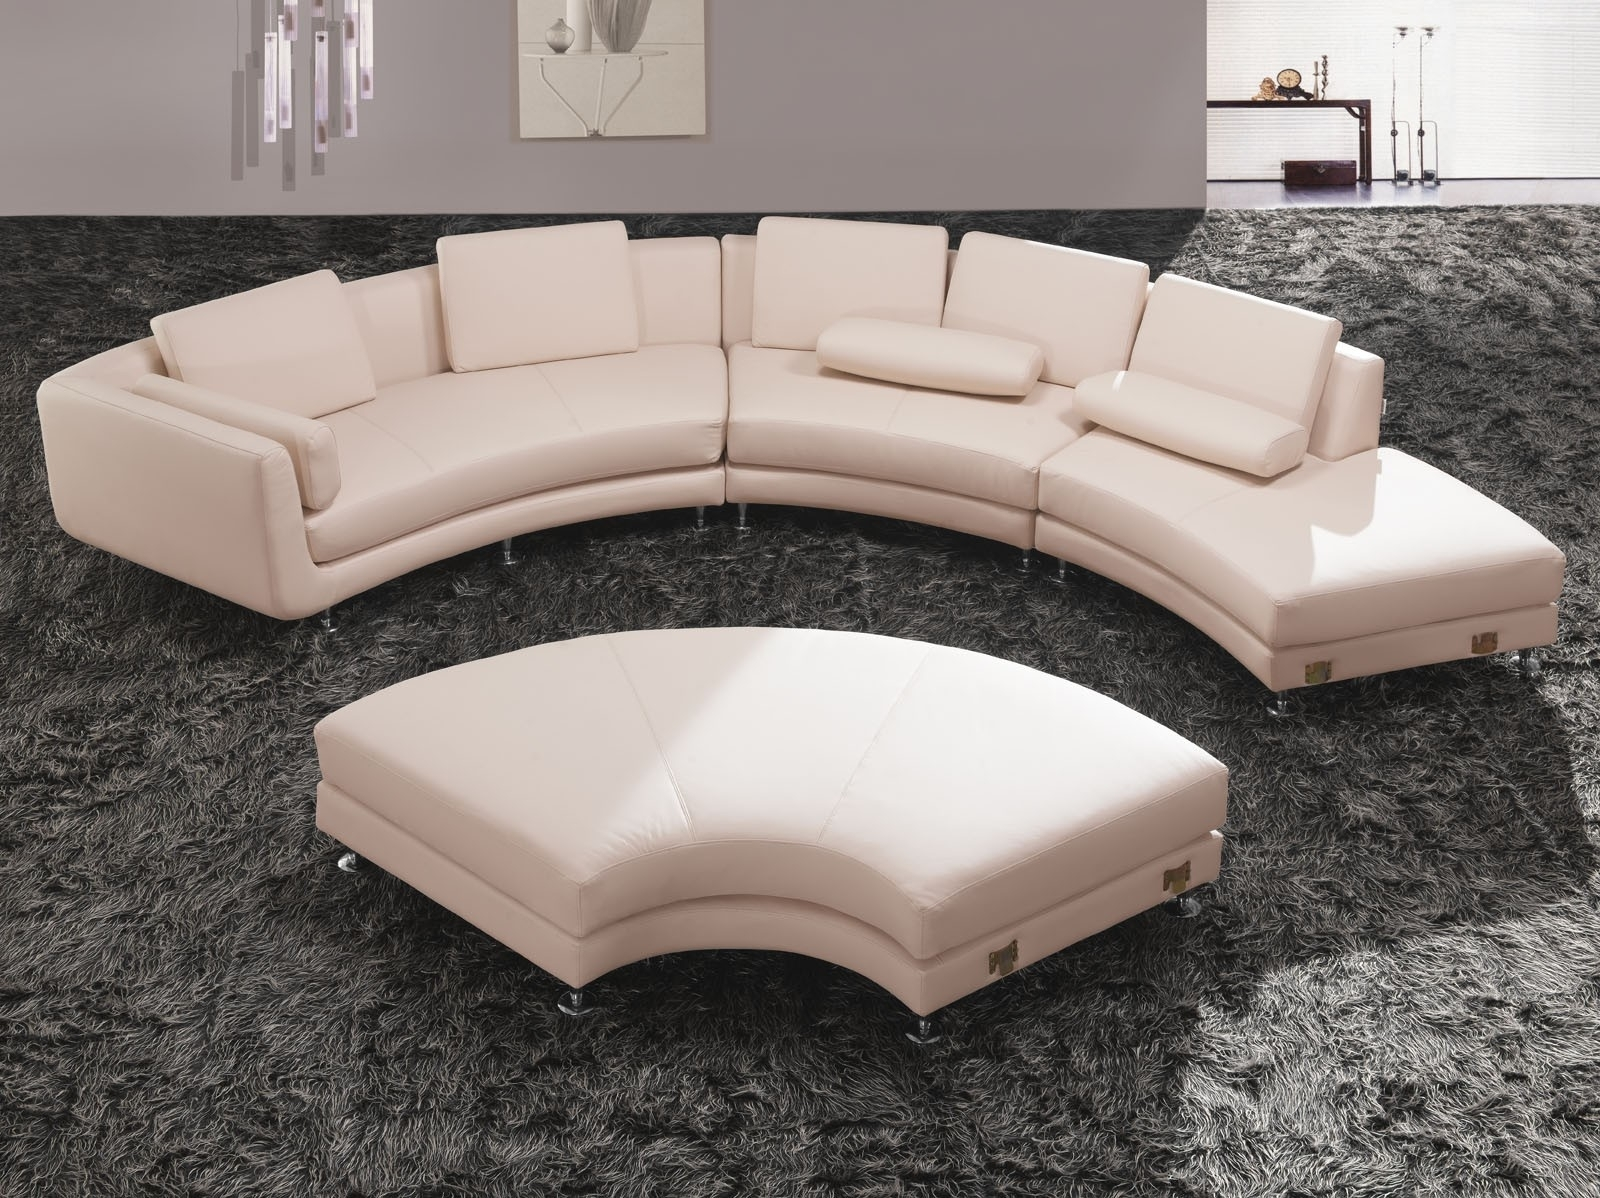 Sofa : Glamorous Round Sectional Sofa Bed Curved Leather Tufted Within Round Sectional Sofas (View 4 of 10)